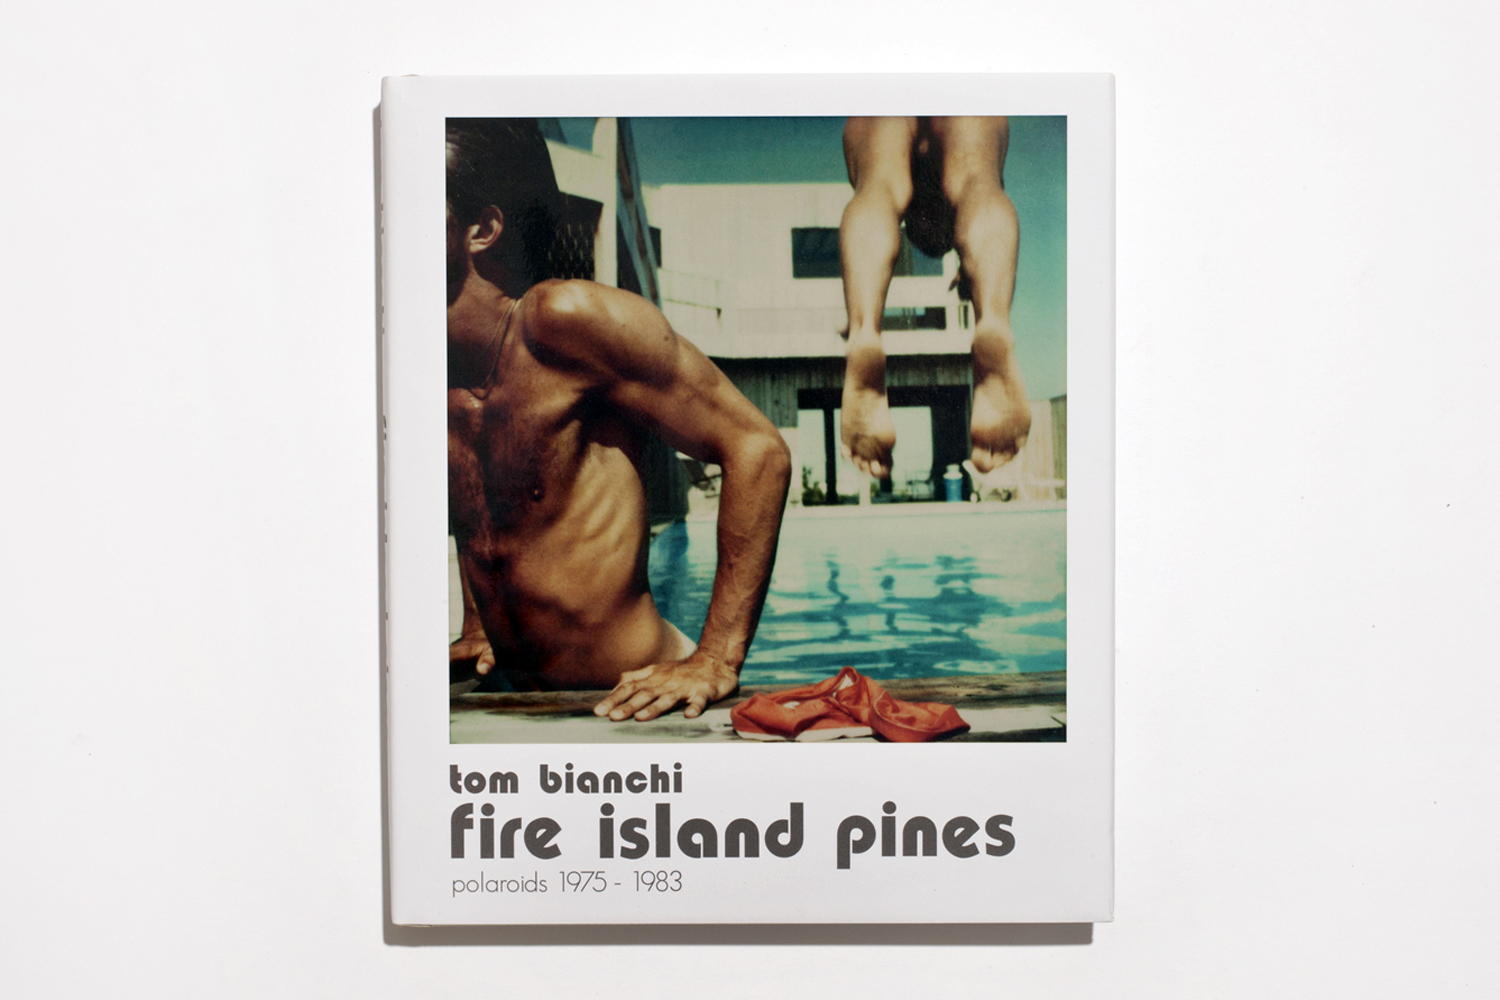 Fire Island Pines: Polaroids 1975-1983 by Tom Bianchi, published by Damiani, selected by Vince Aletti, photography critic, The New Yorker.